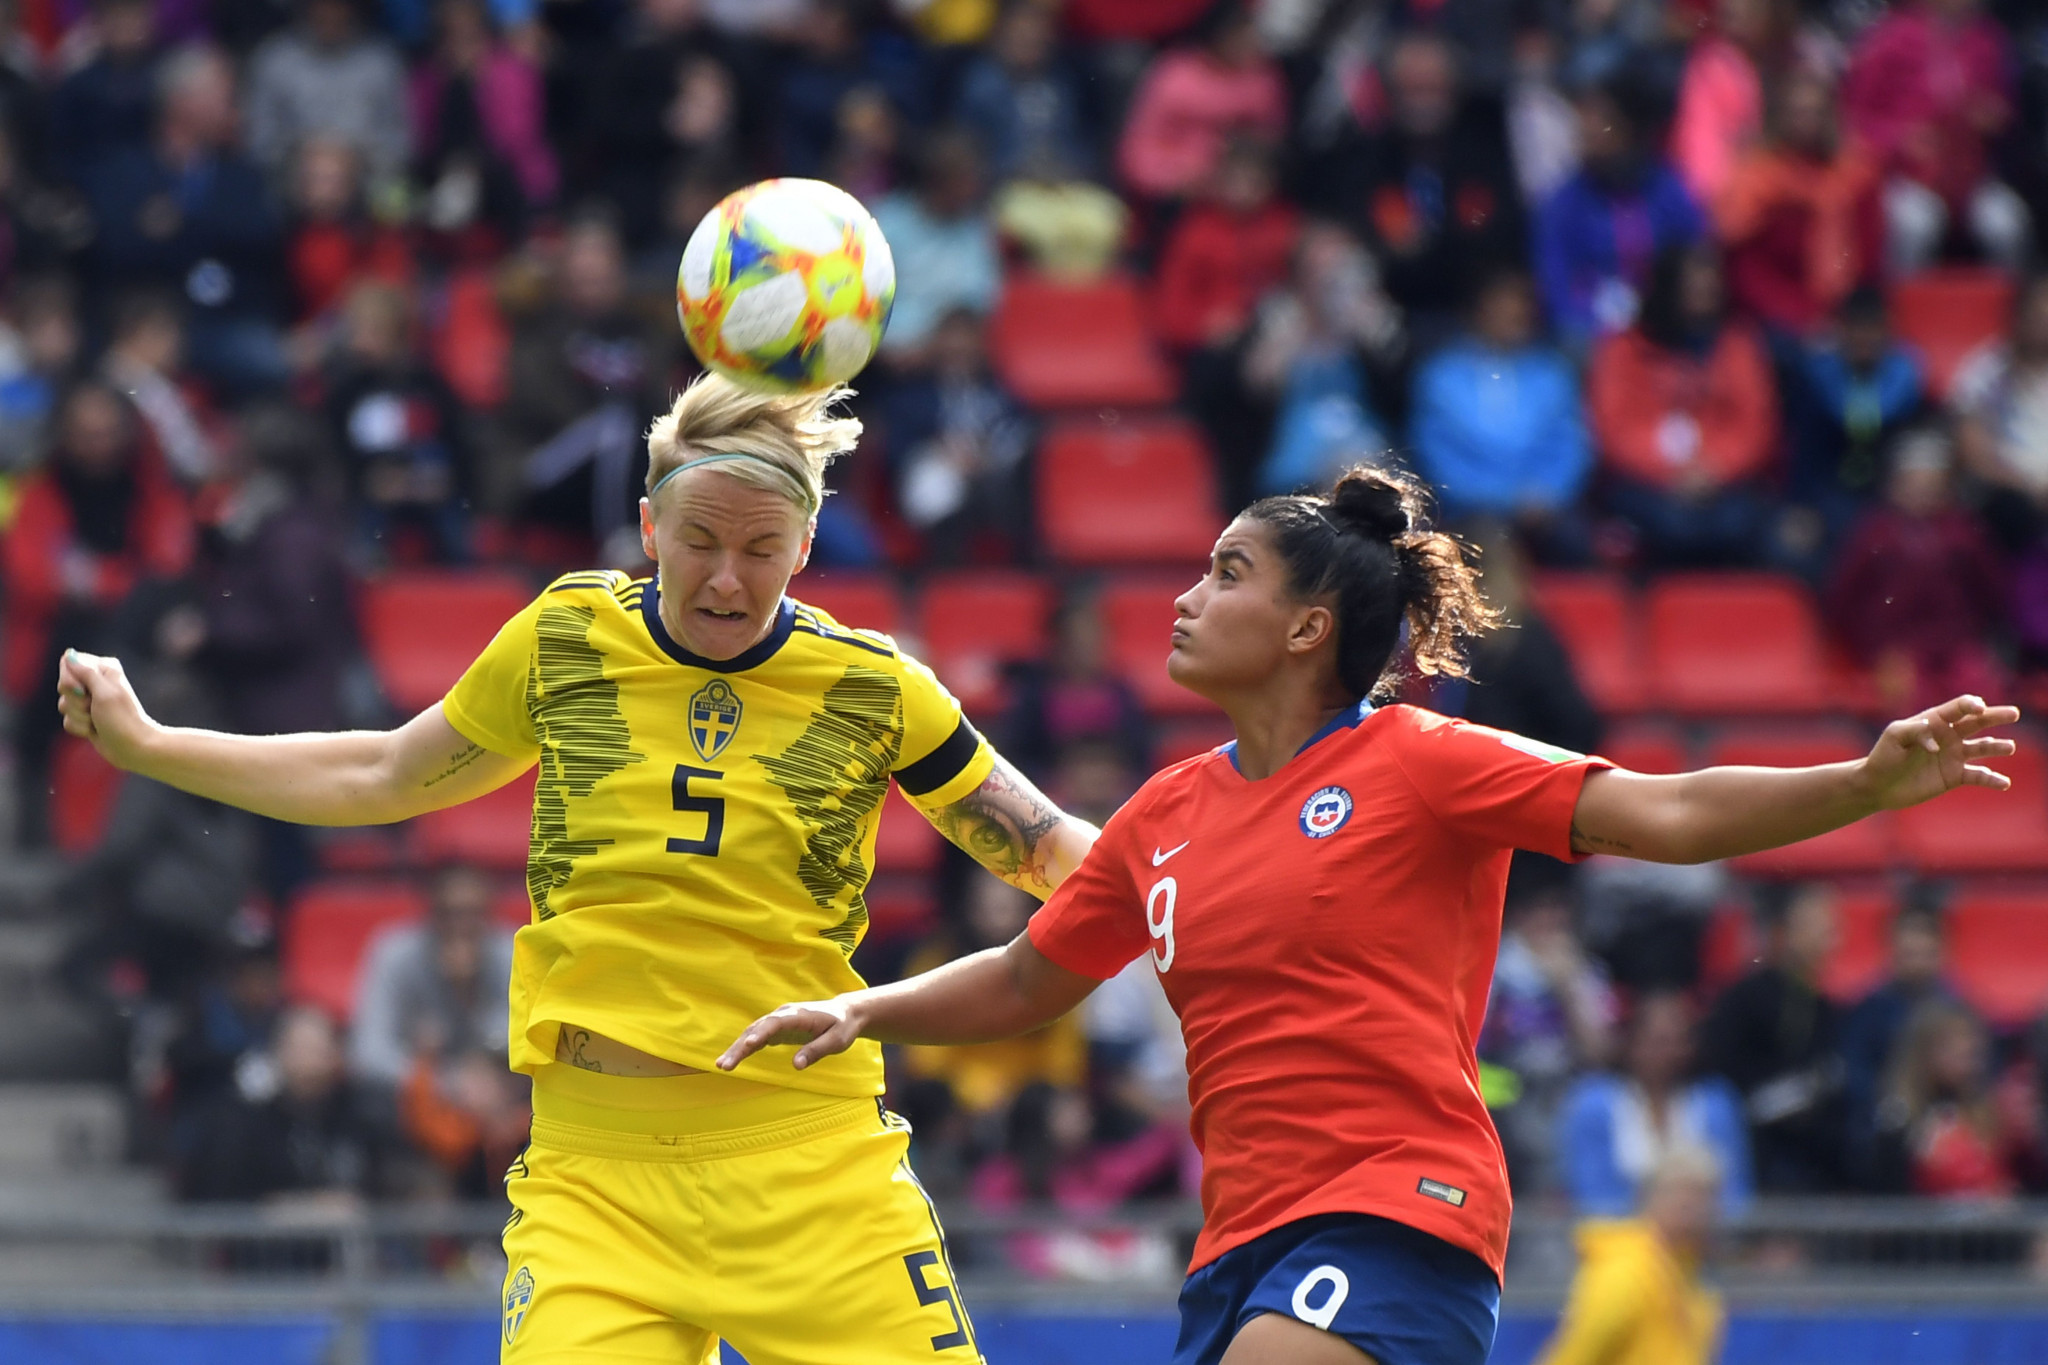 Nilla Fischer is representing Sweden at the 2019 FIFA Women's World Cup in France ©Getty Images